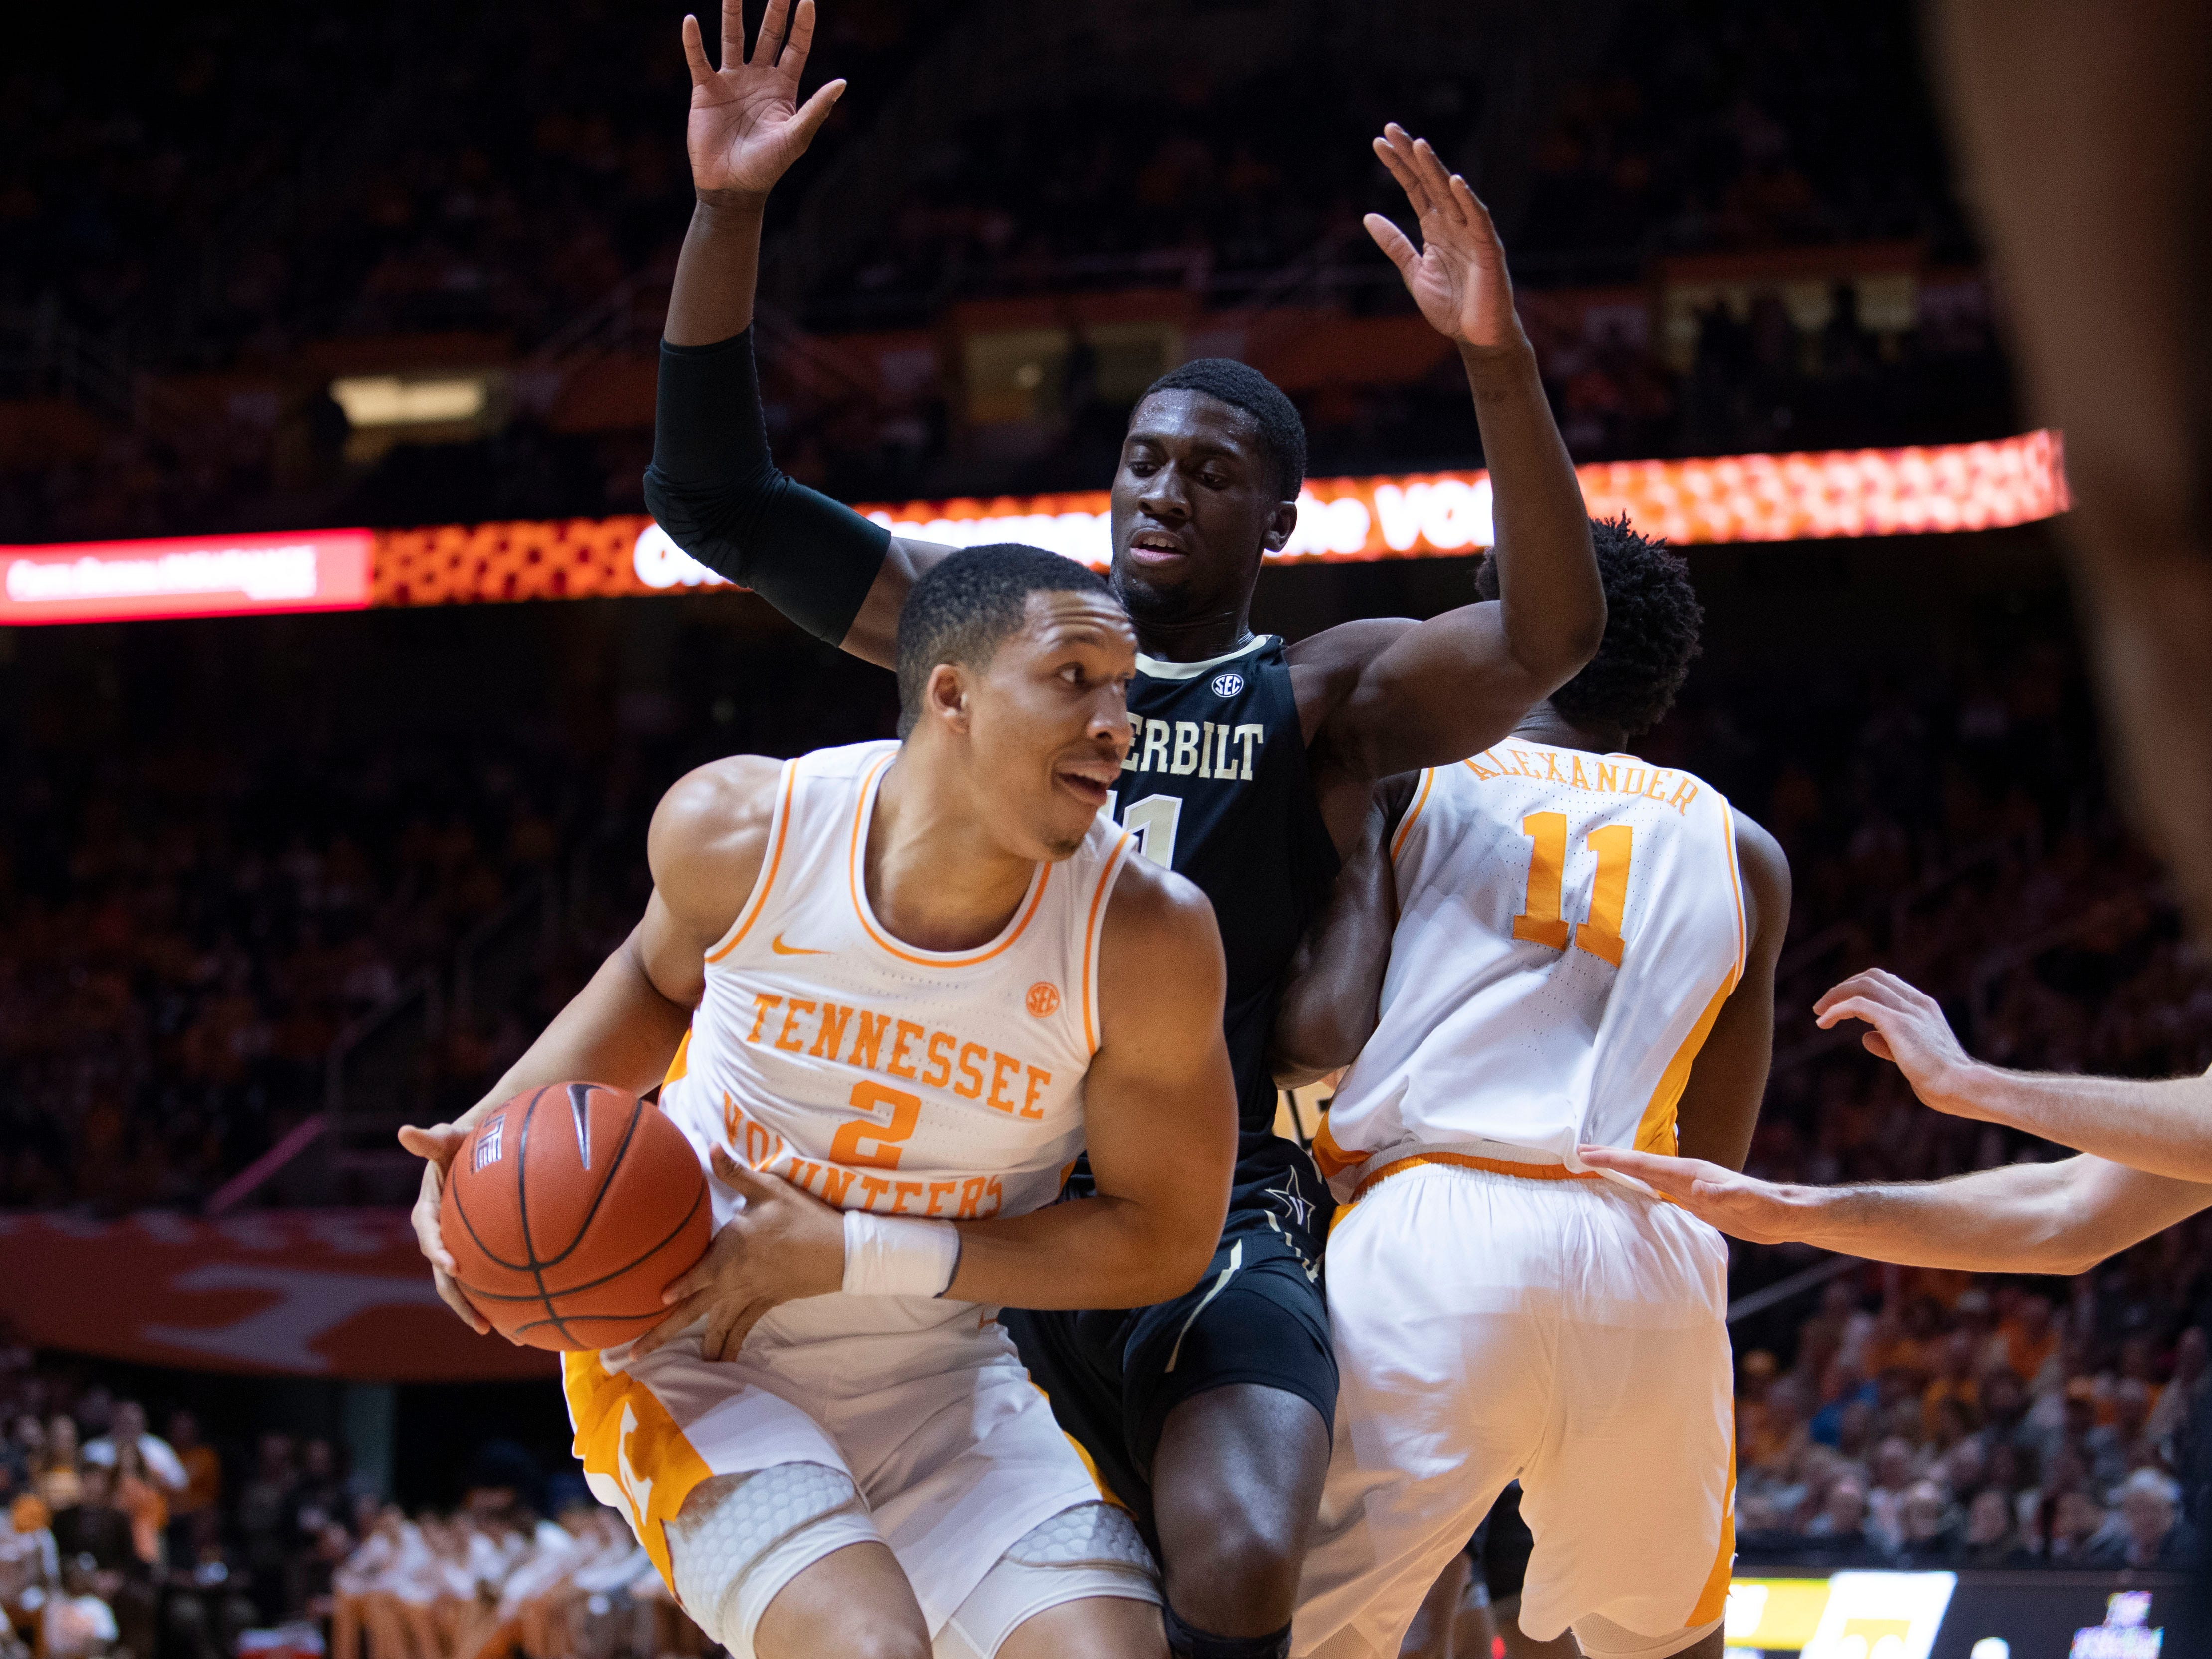 Tennessee's Grant Williams (2) is guarded by Vanderbilt's Simisola Shittu (11) on Tuesday, February 19, 2019.